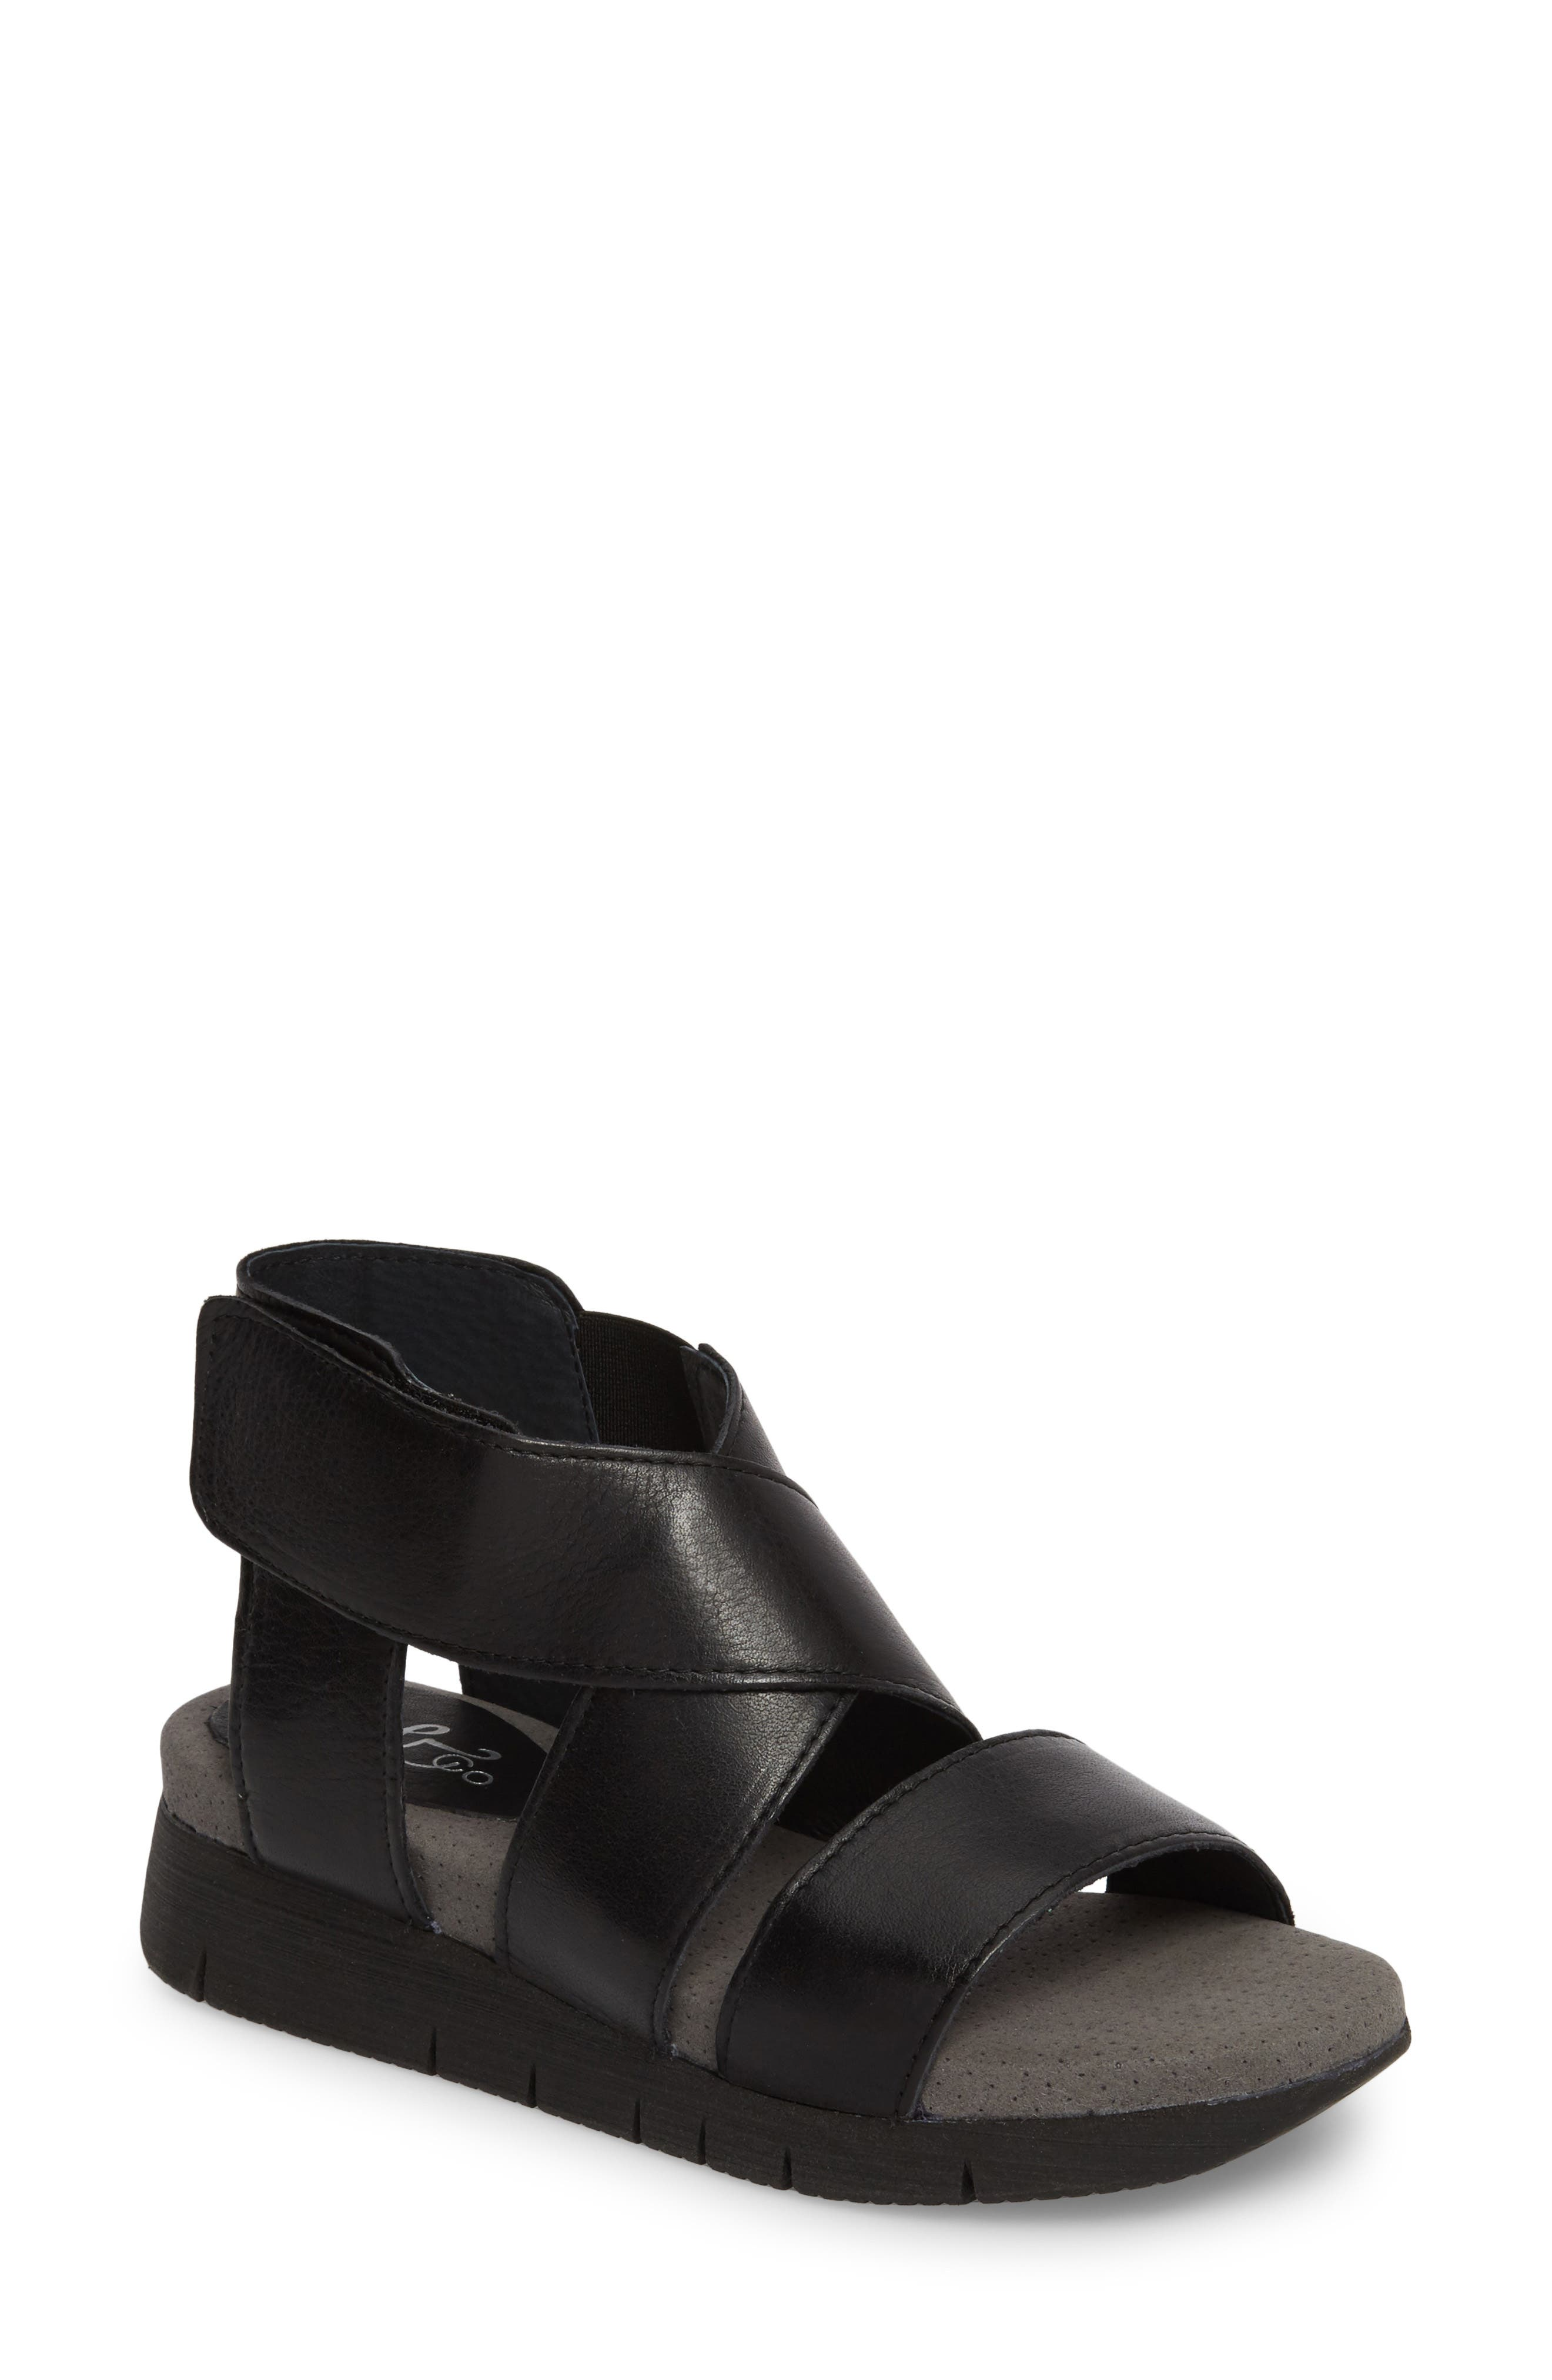 Piper Wedge Sandal,                         Main,                         color, BLACK SAUVAGE LEATHER